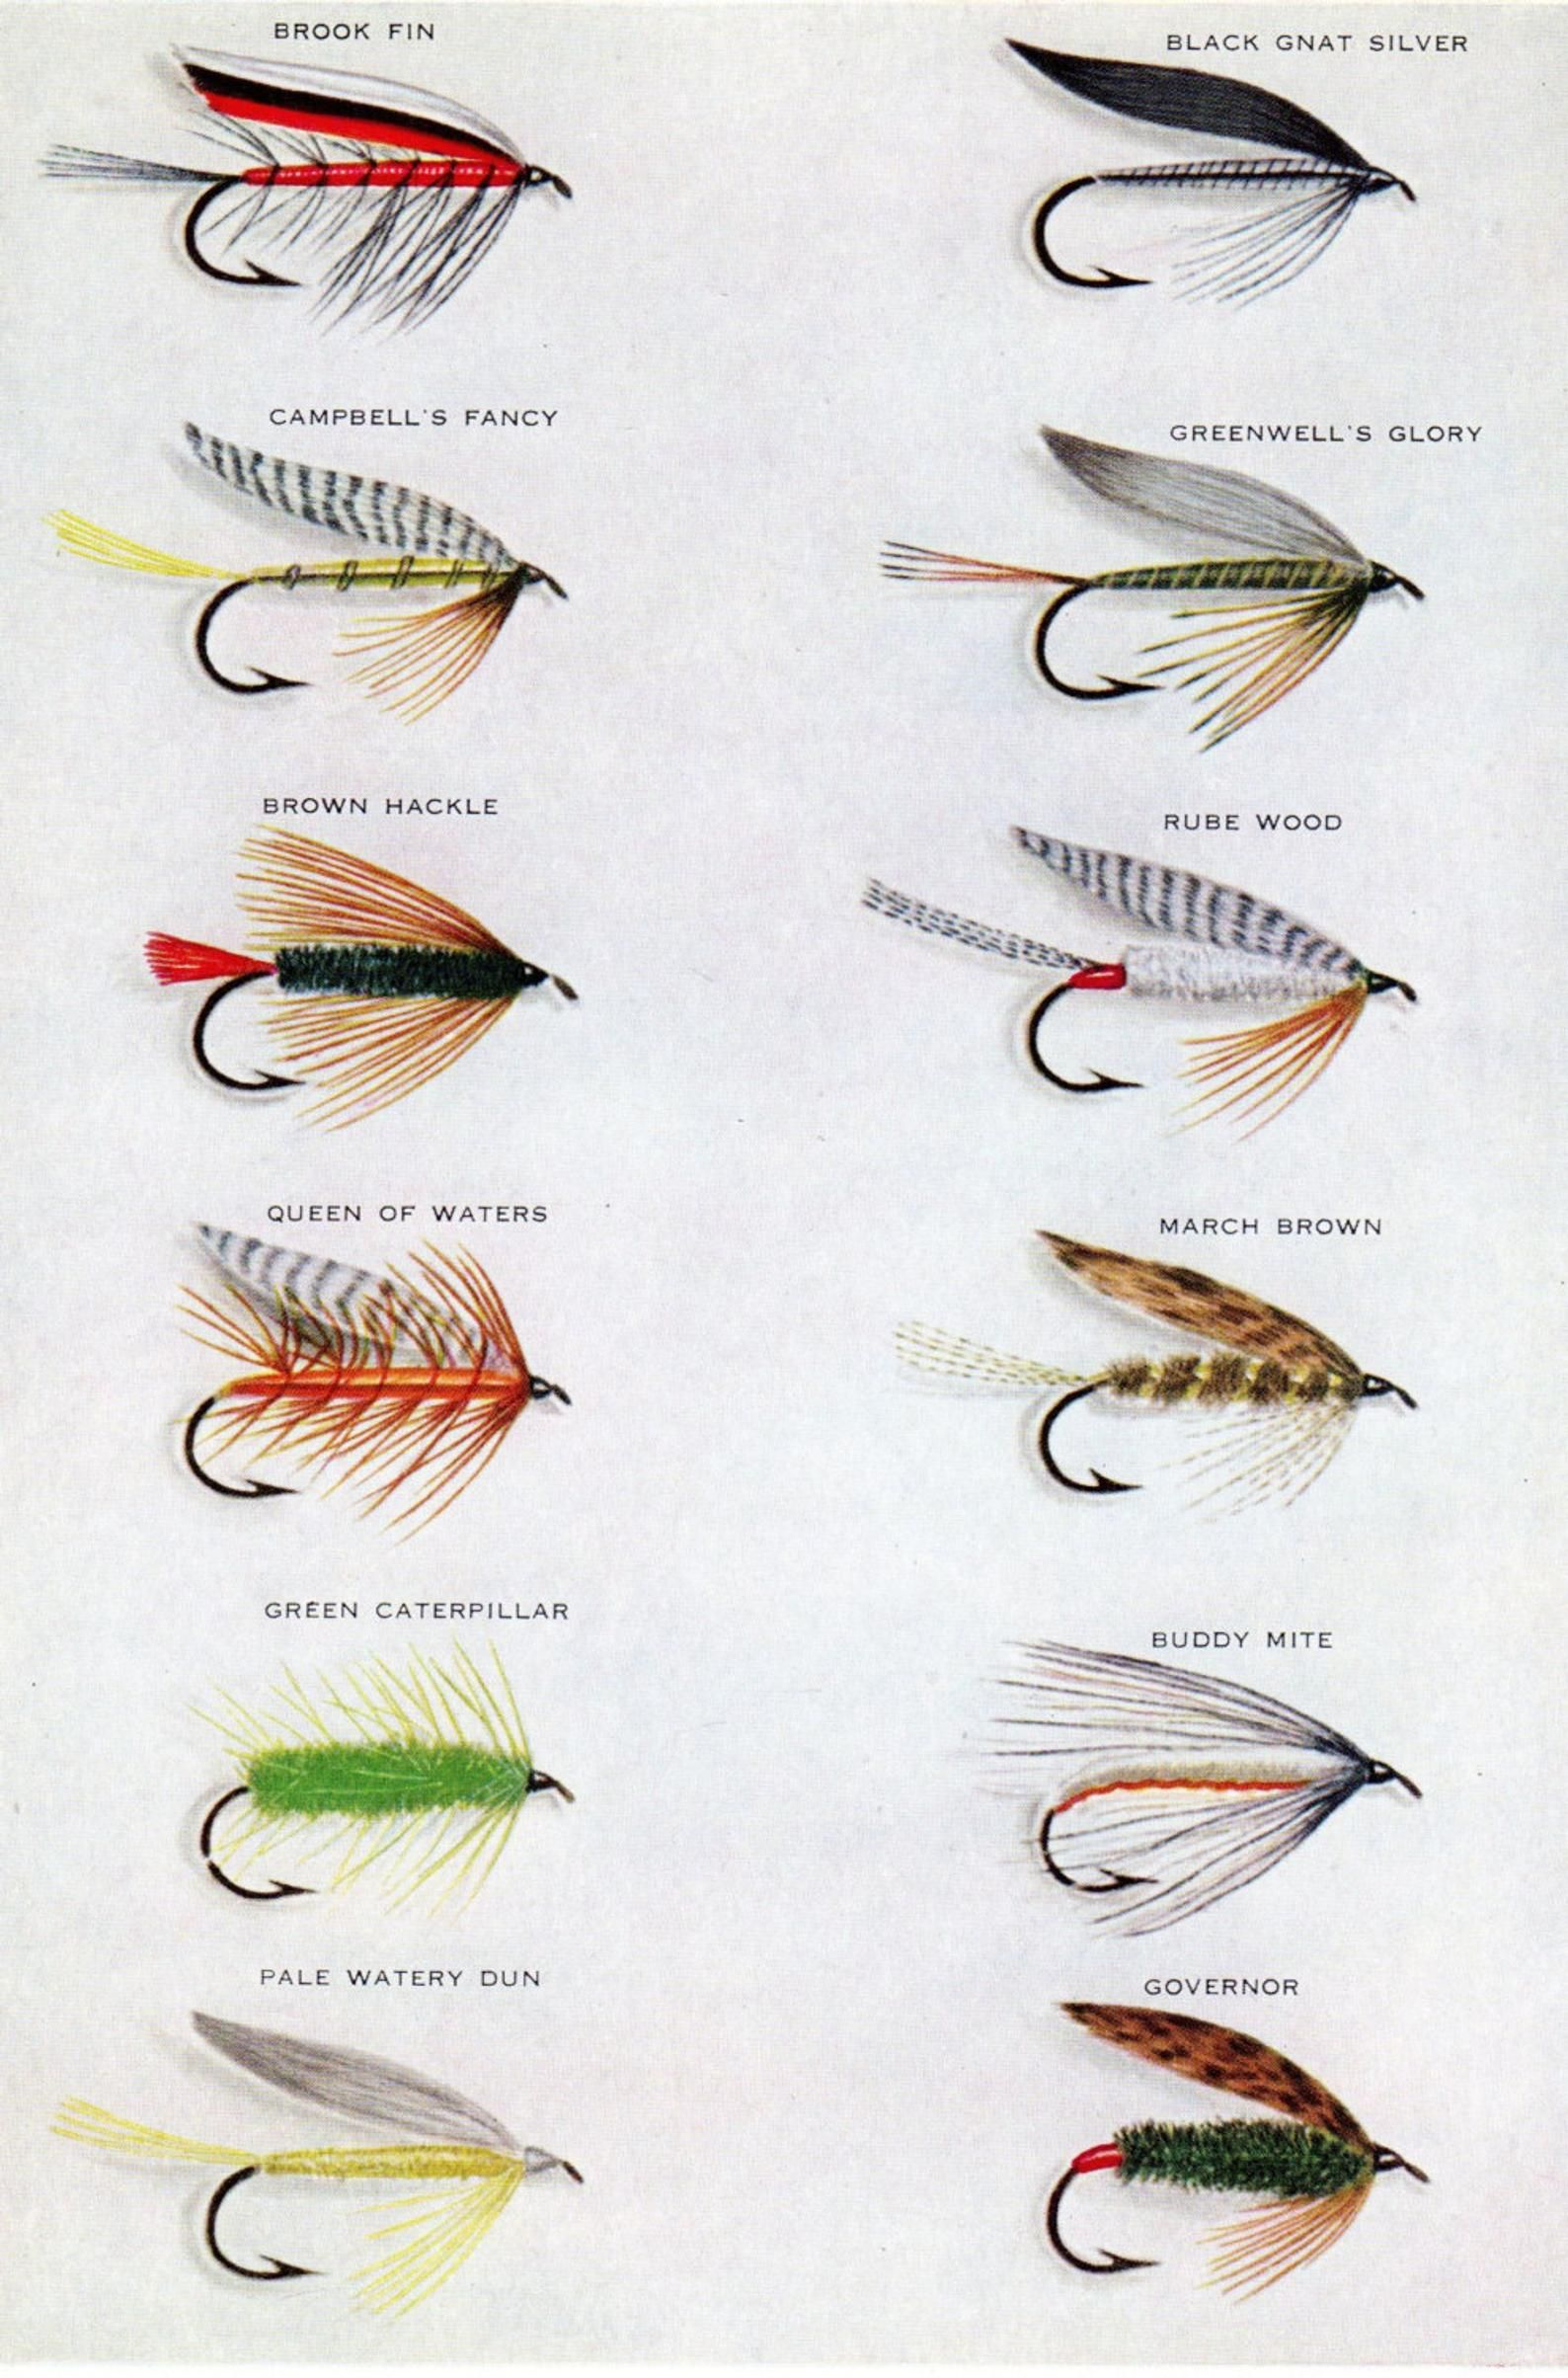 1940 Wet Flies Trout Fly Fishing Flies Sporting Antique Print Matted 11 X 14 Angler Fisherman Fly Fishing Flies Trout Fly Fishing Fly Fishing Art